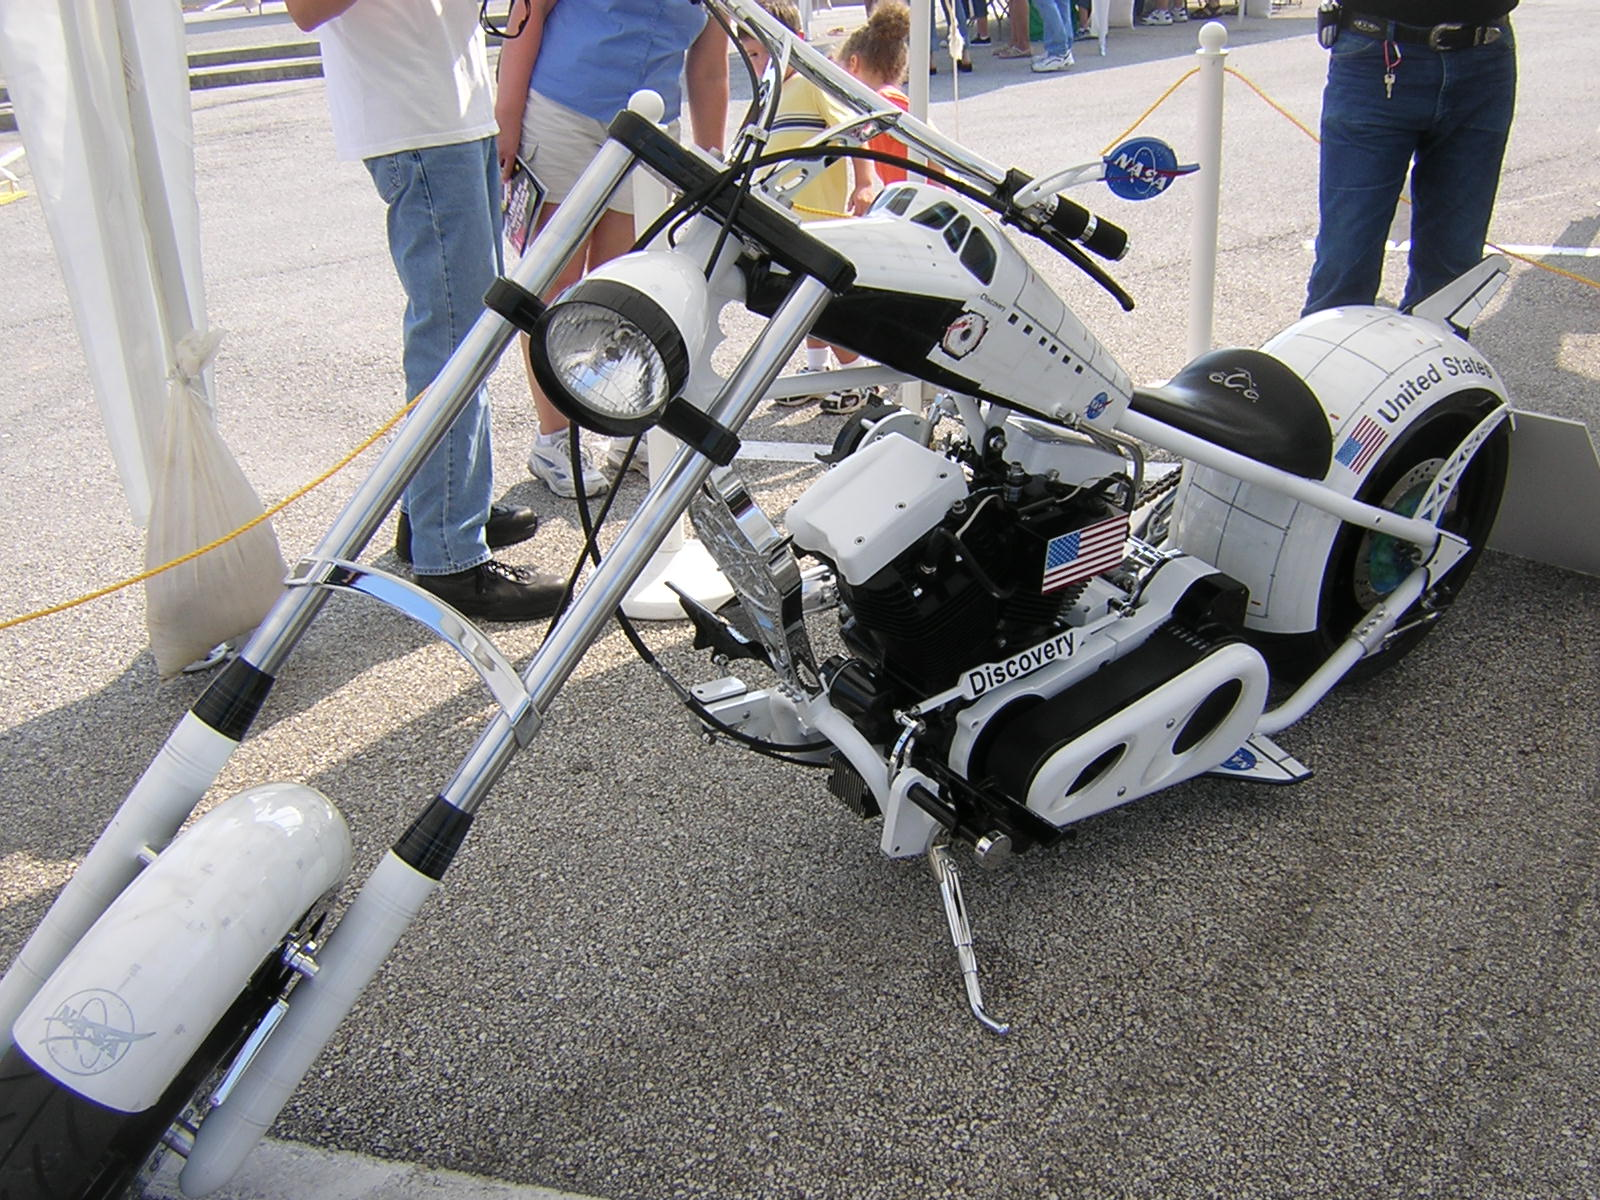 space shuttle bike occ - photo #7